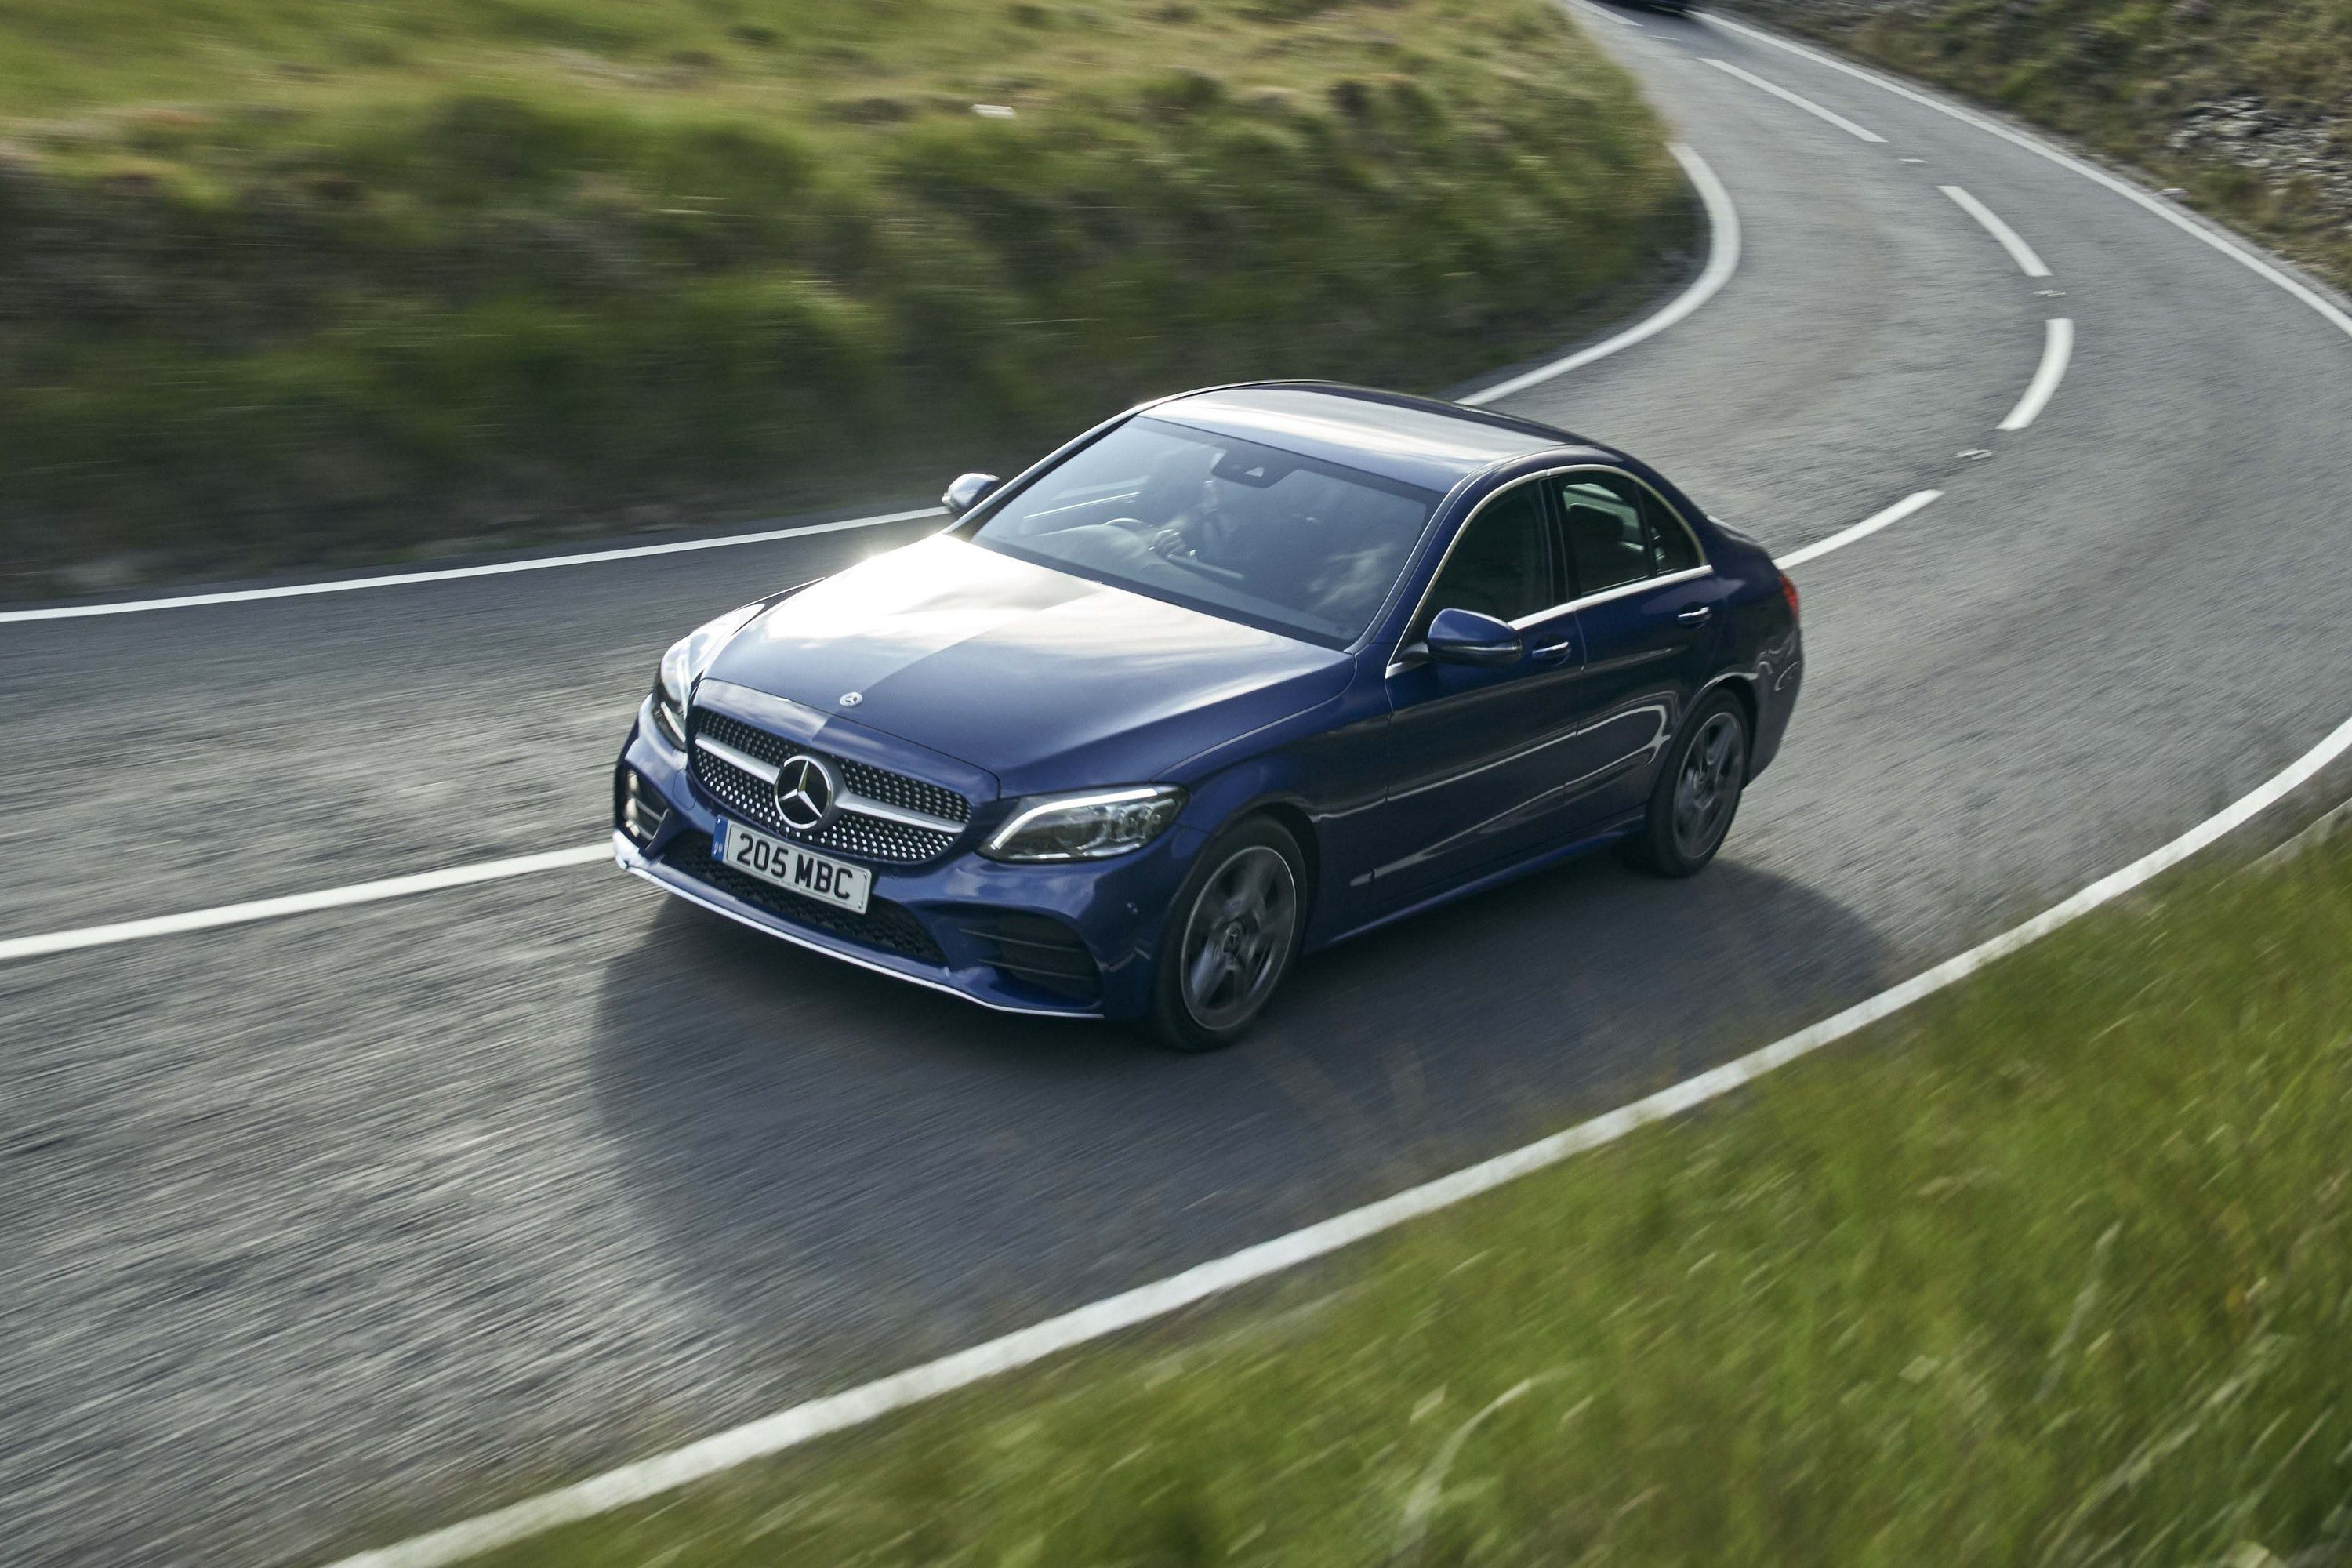 Blue Mercedes-Benz C-Class driving on a road